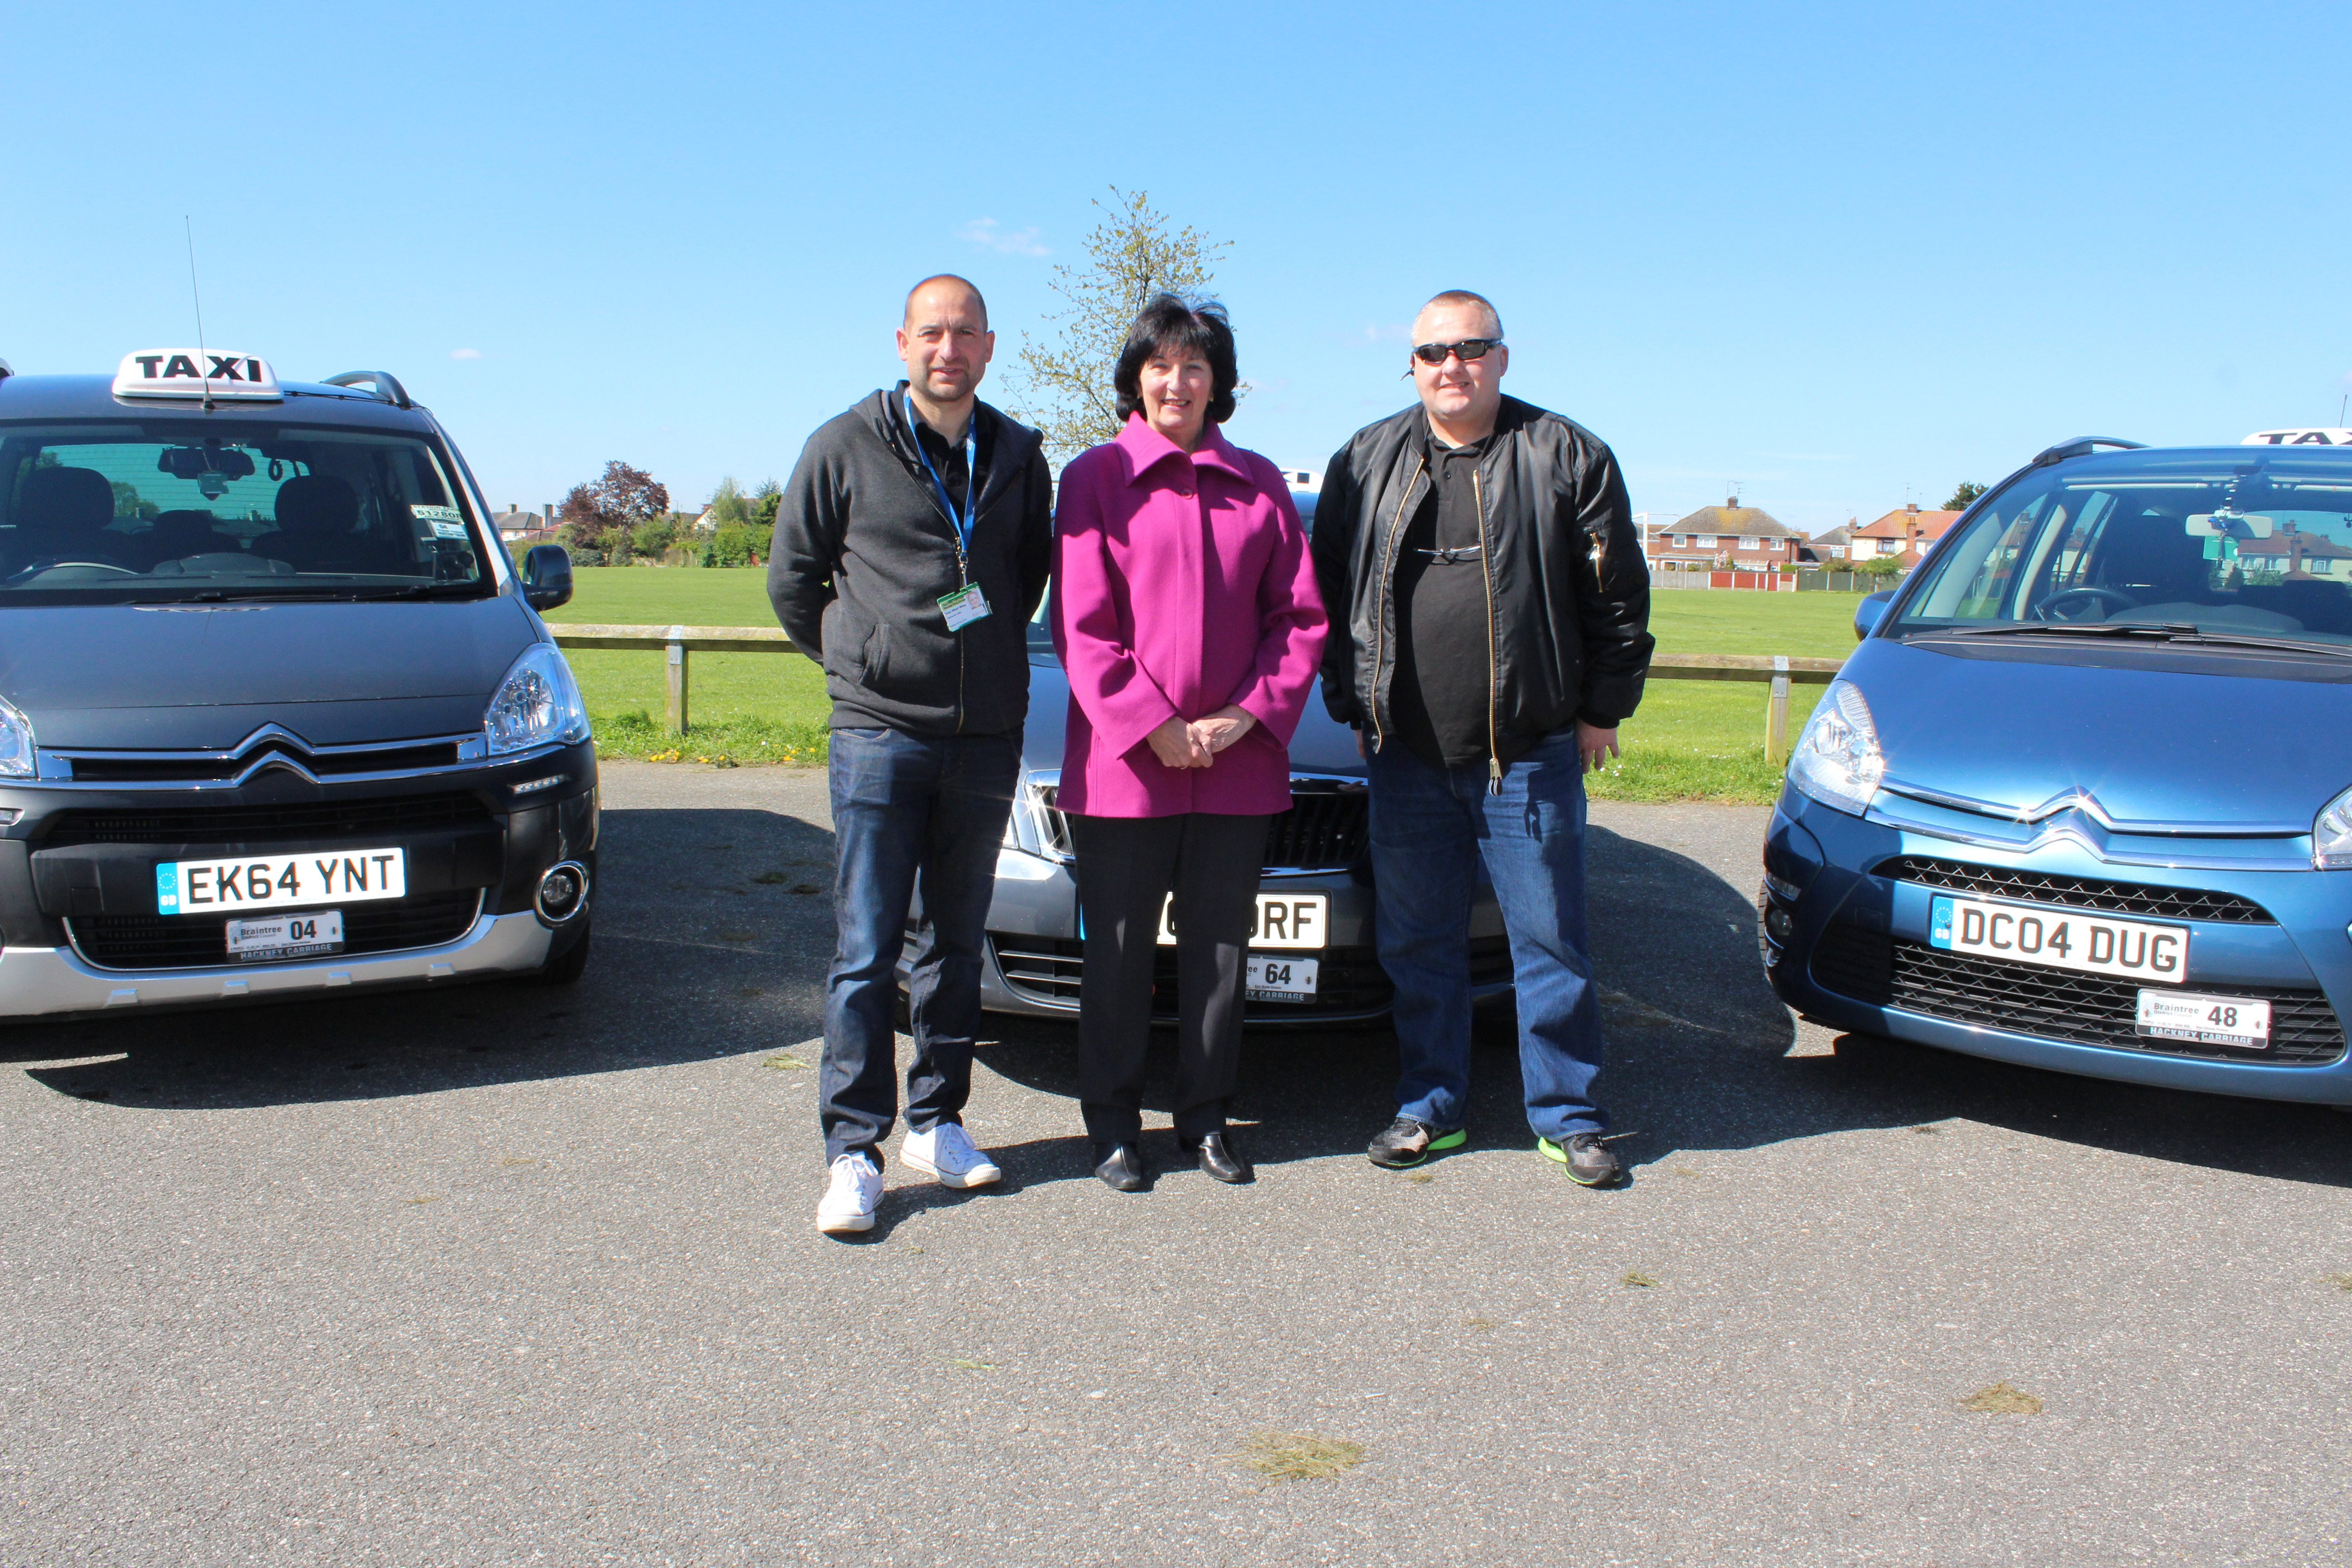 Taxi drivers photo with Cllr Wendy Schmitt